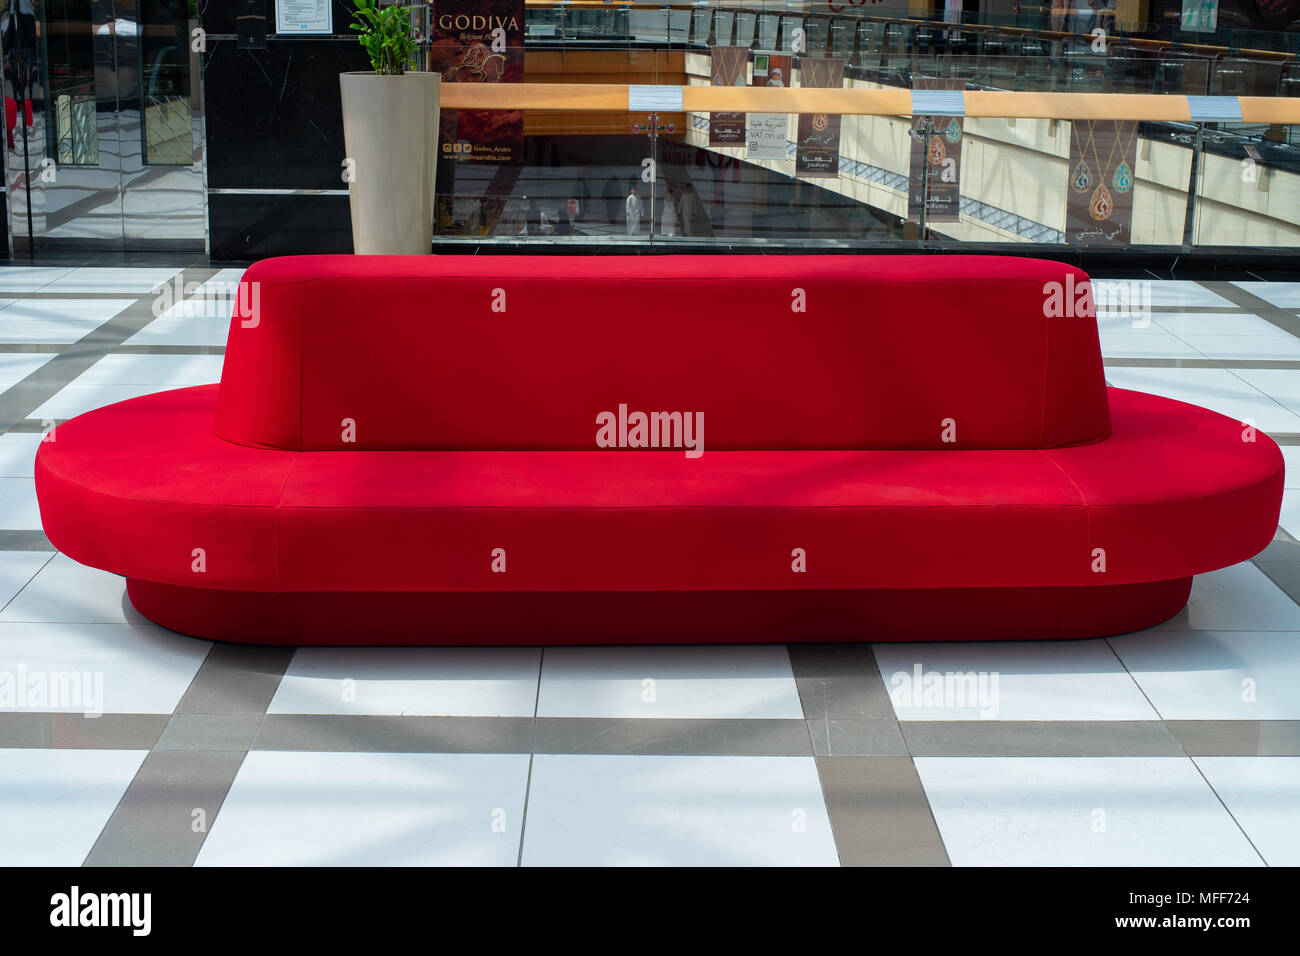 Sofa Bed Abu Dhabi Amazing Bright Red Hat Like Sofa Installed At Shopping Mall Abu